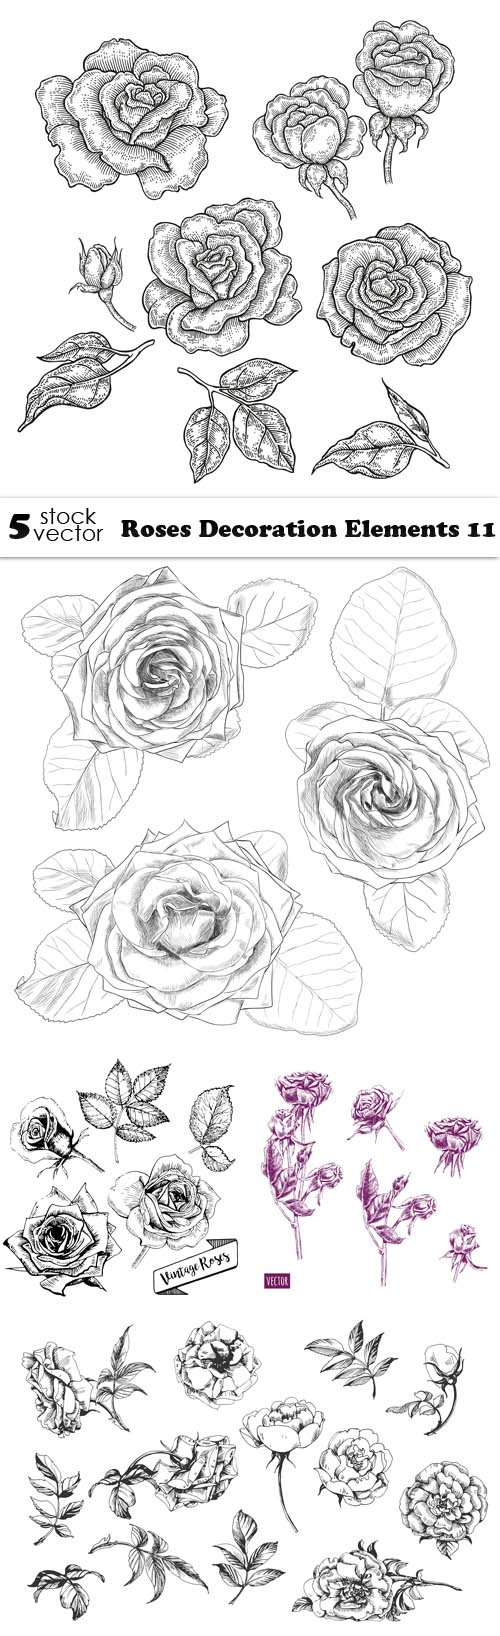 Vectors - Roses Decoration Elements 11